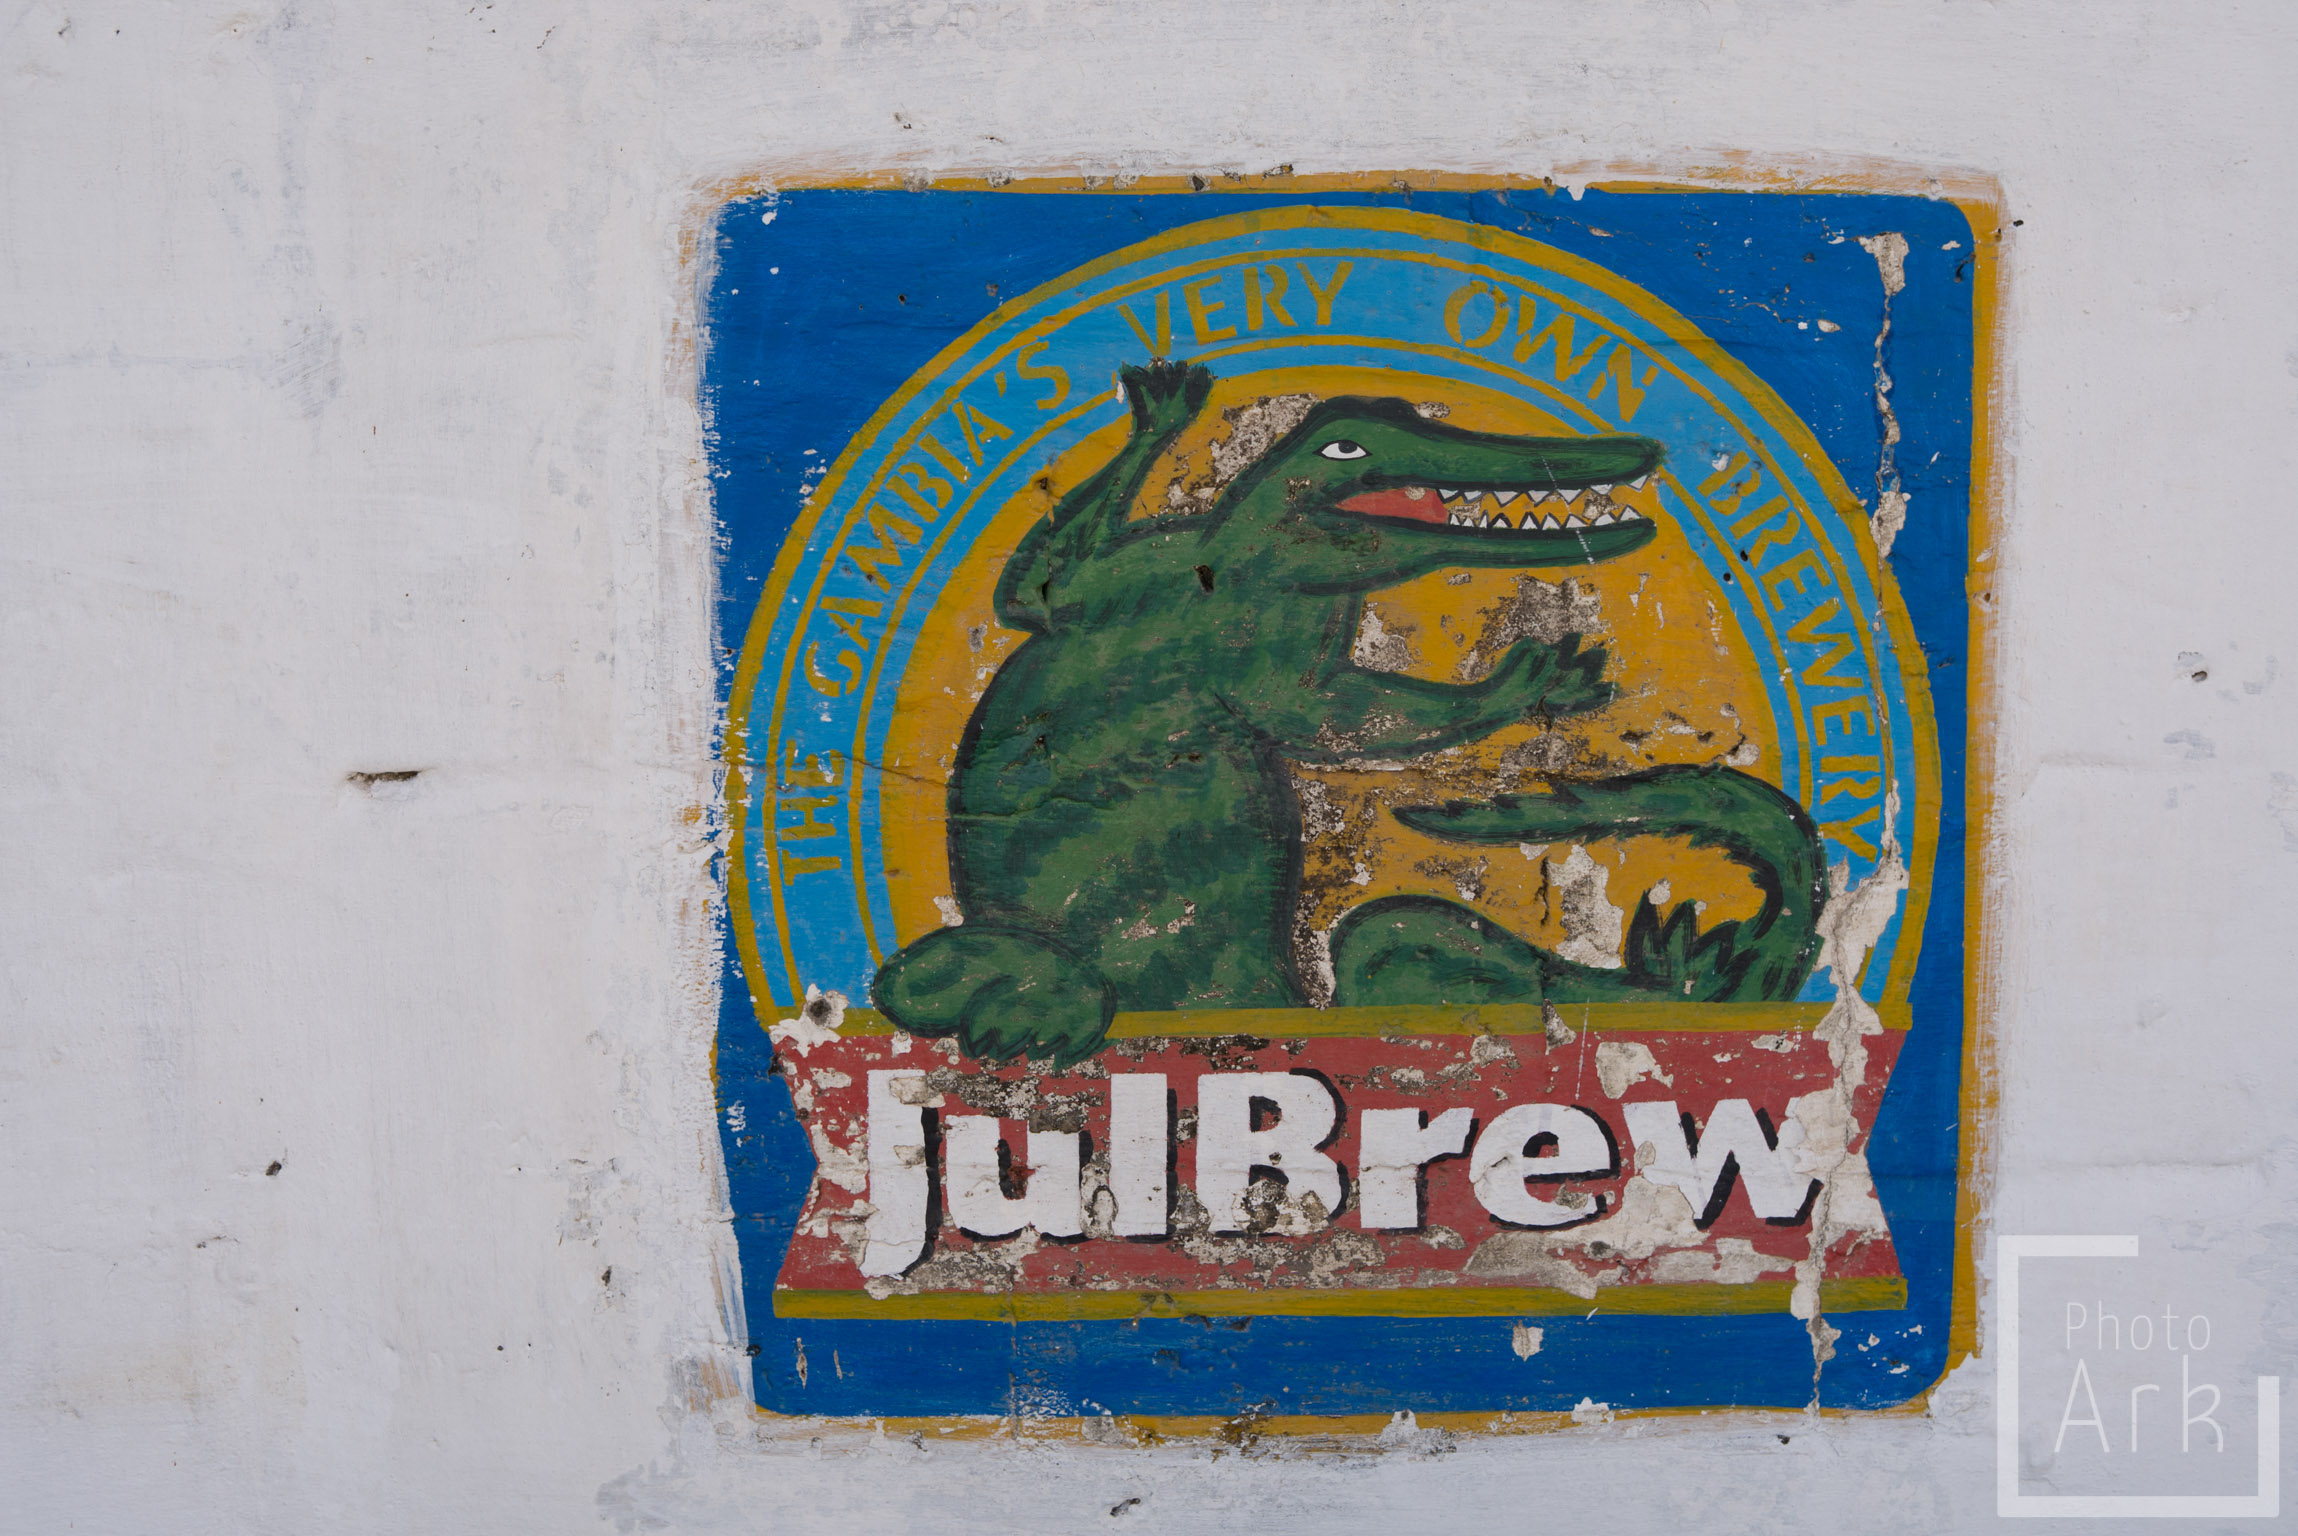 The Gambia Julbrew